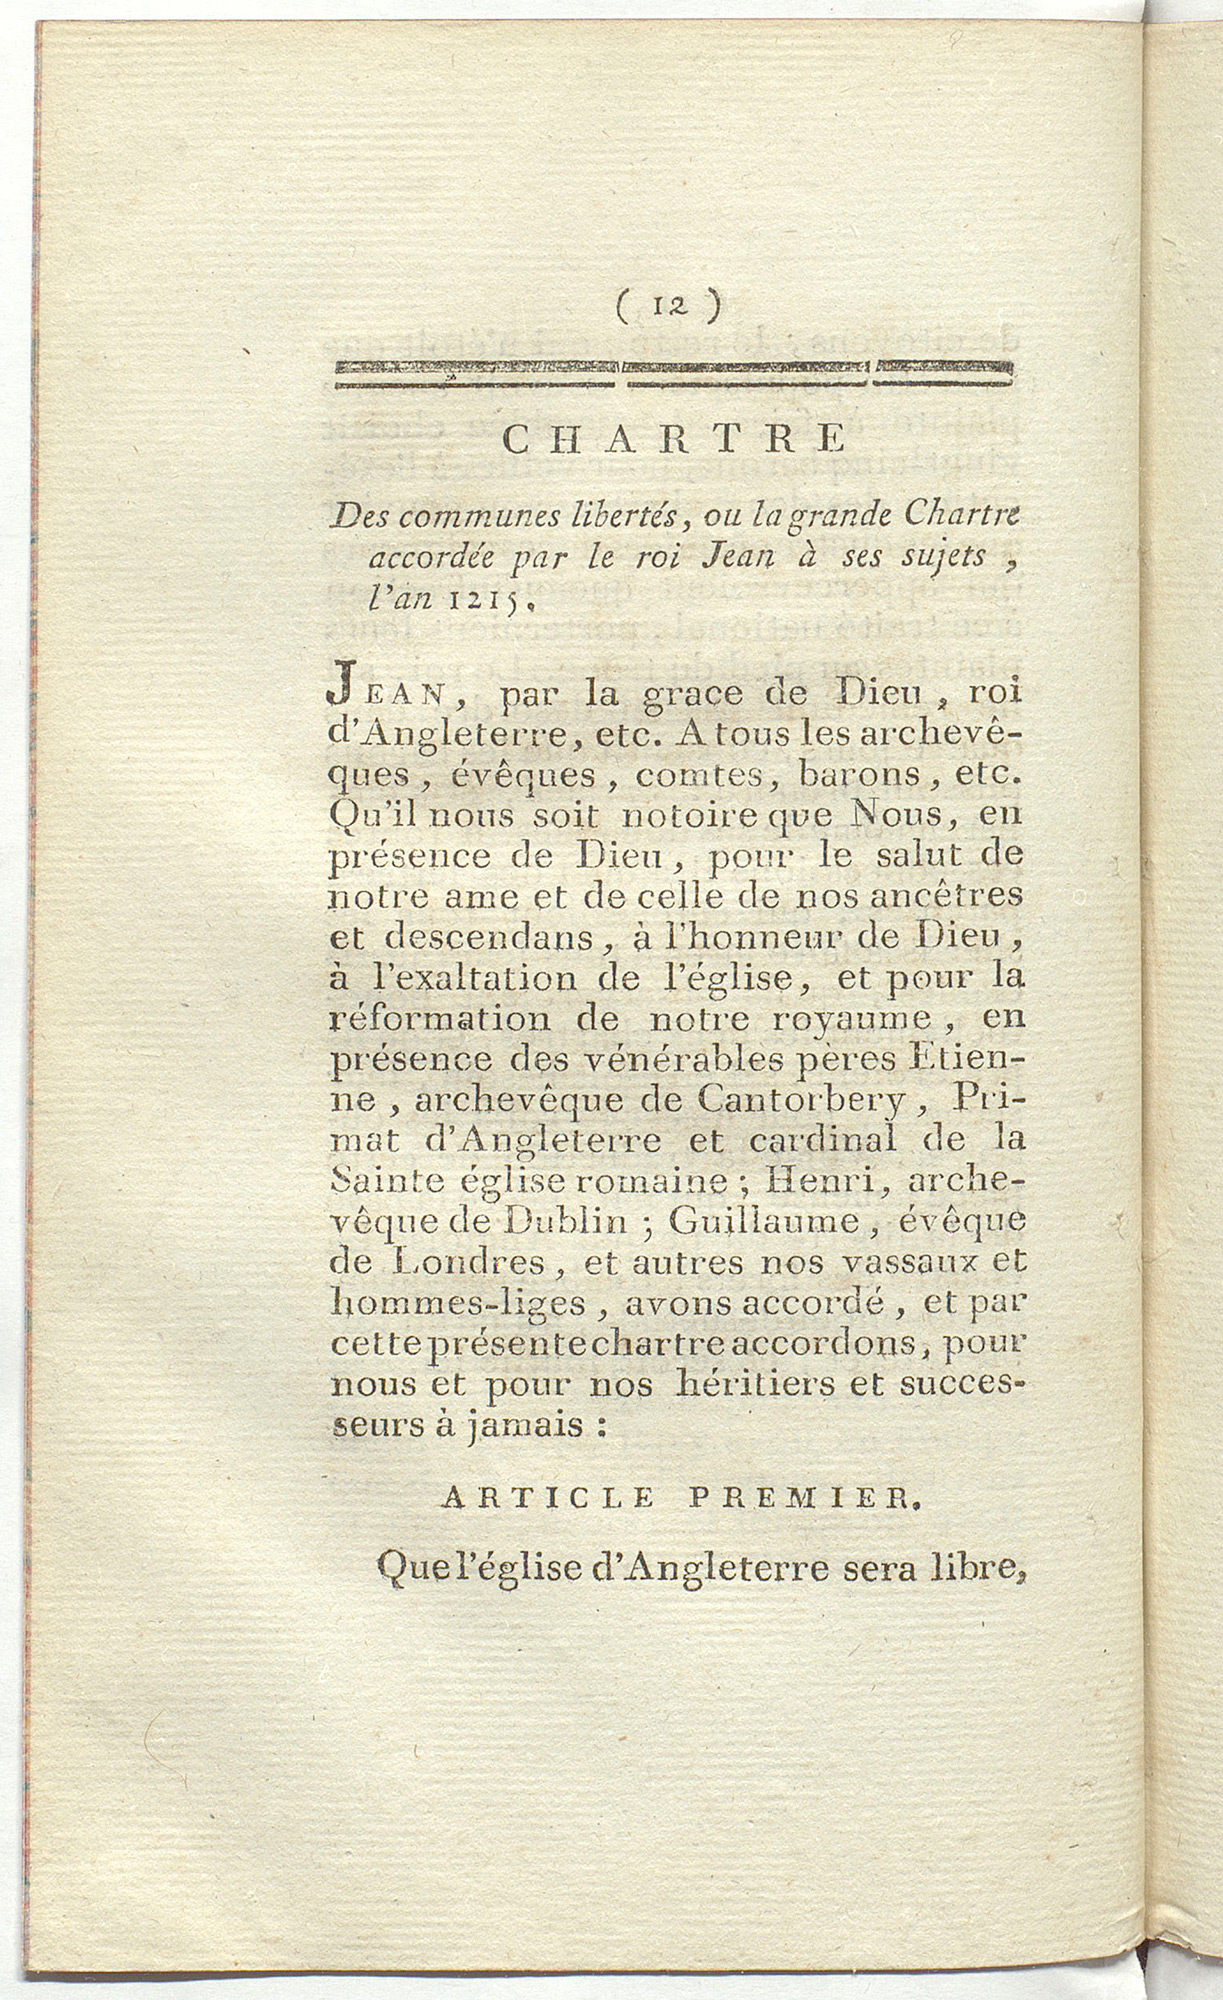 Grande Chartre d'Angleterre, a French translation of Magna Carta